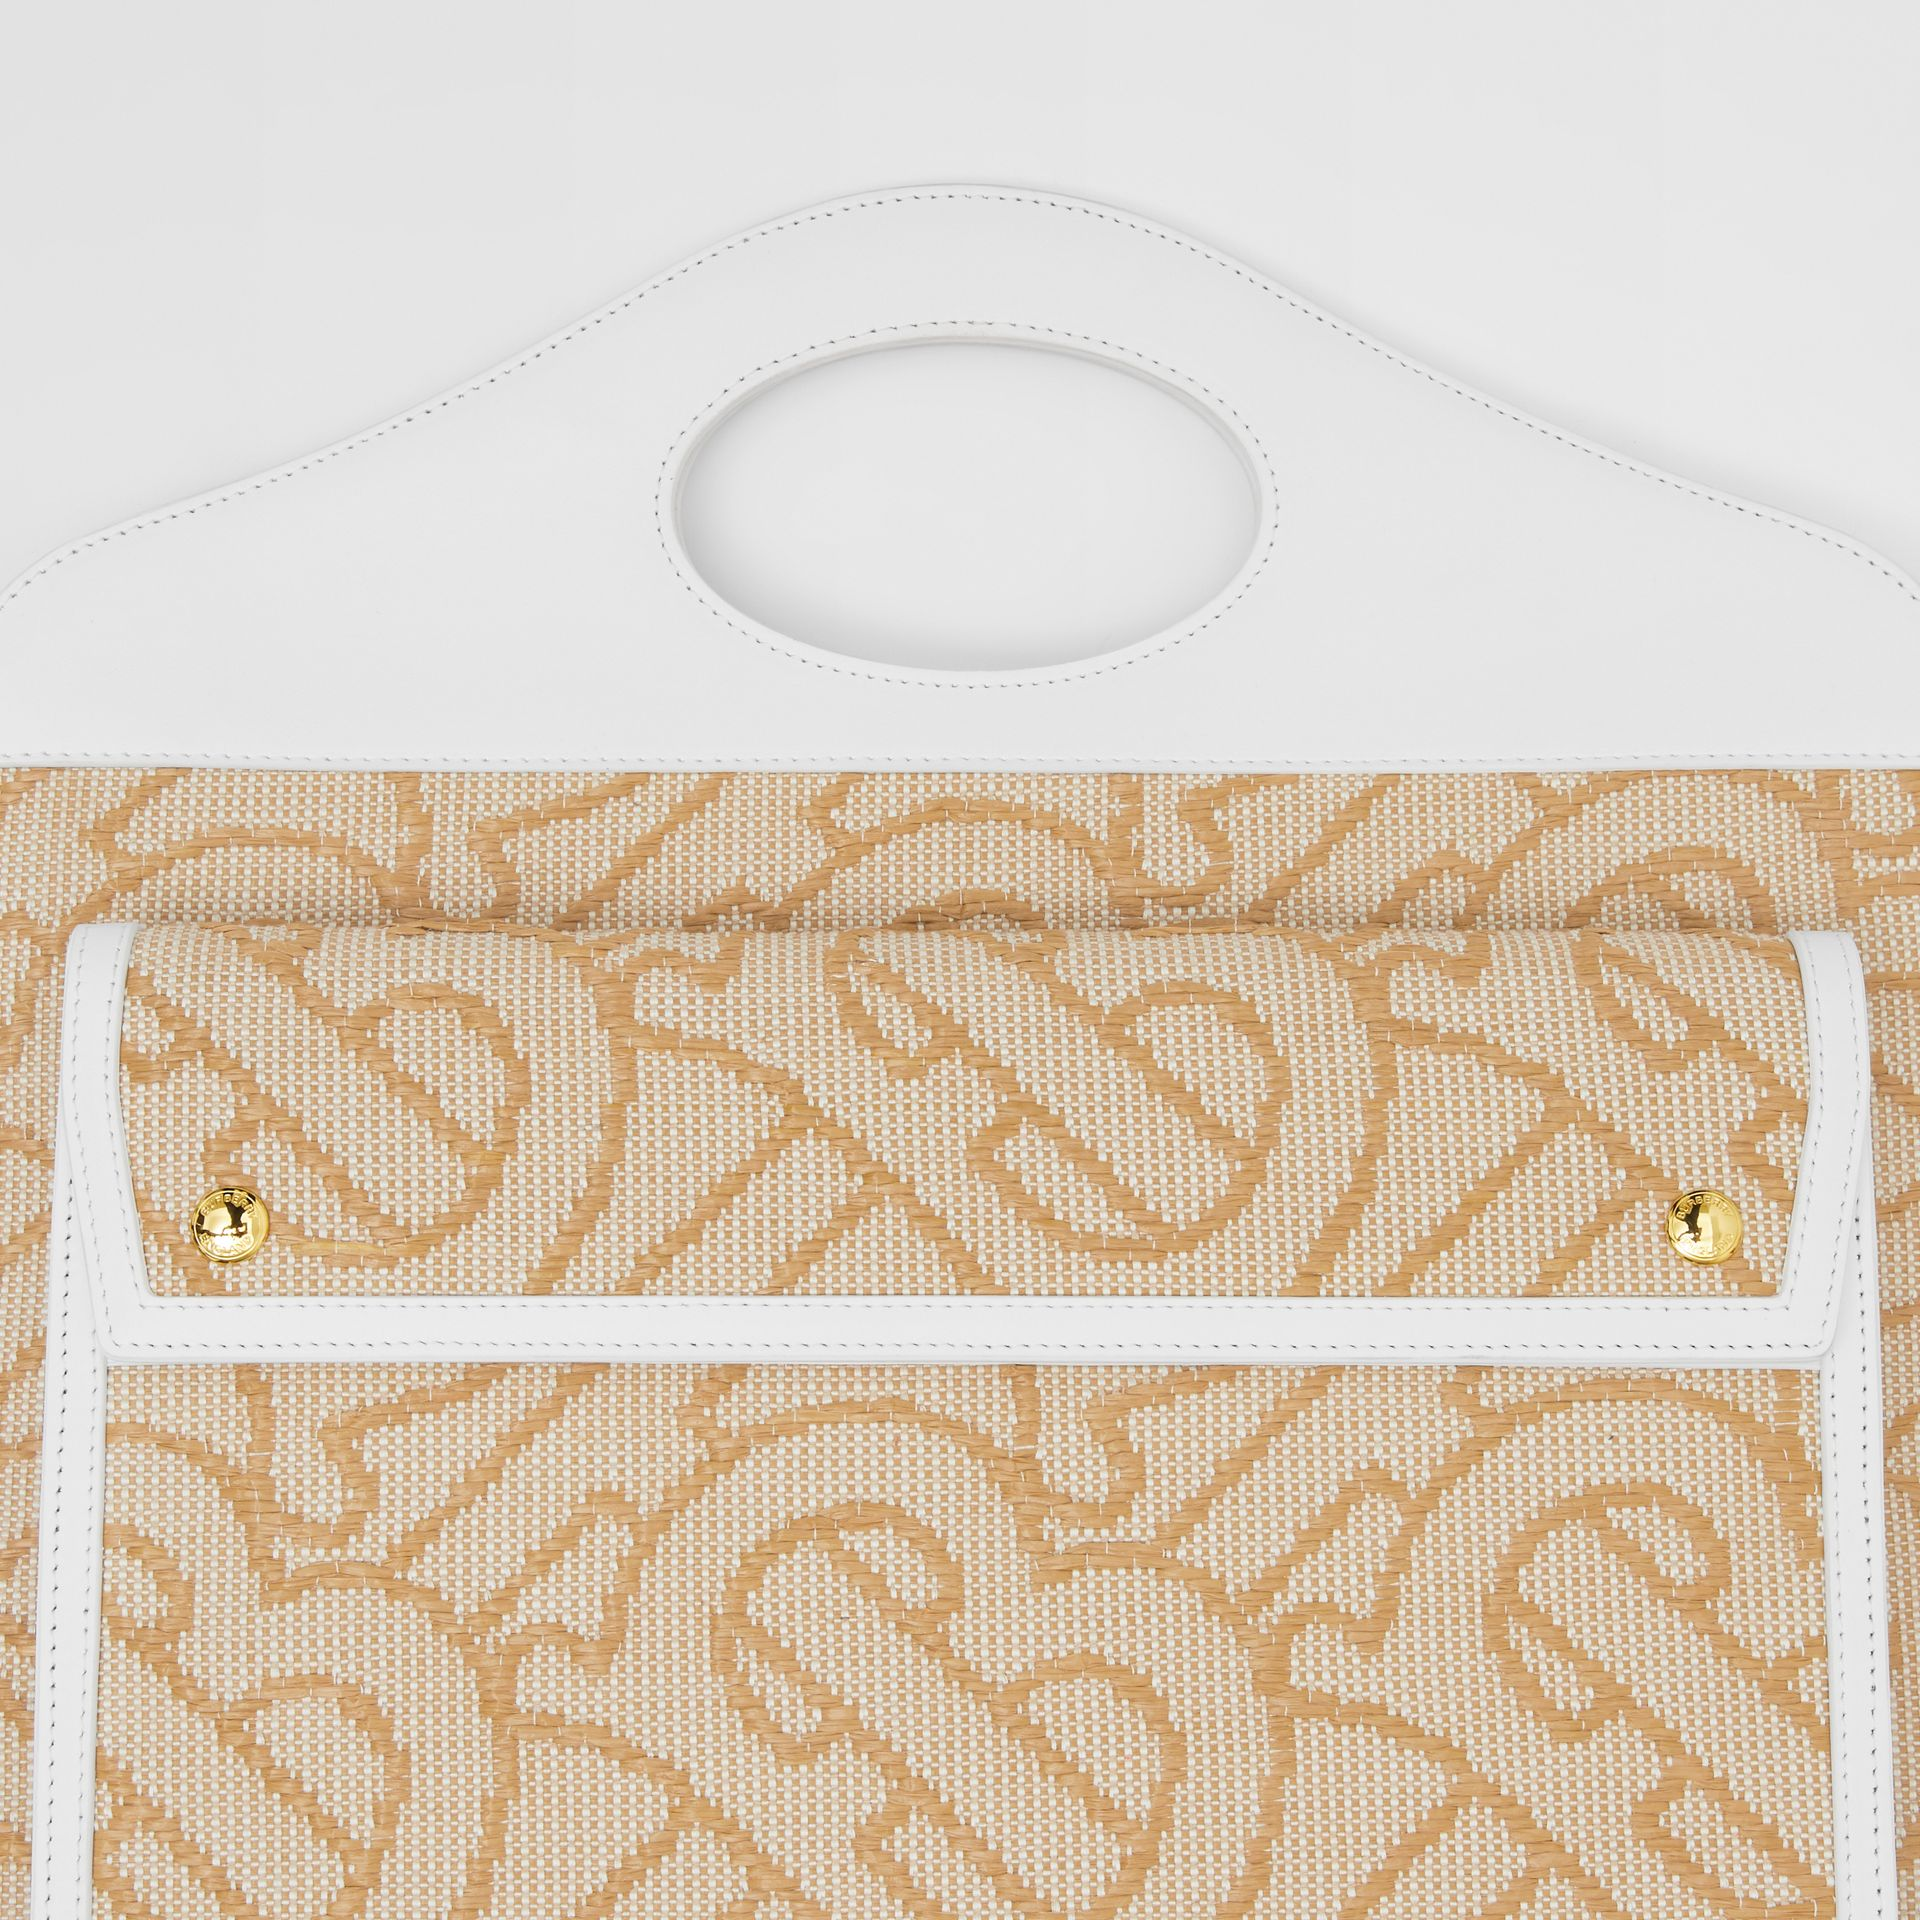 Medium Raffia and Leather Pocket Bag in Natural - Women | Burberry - gallery image 1